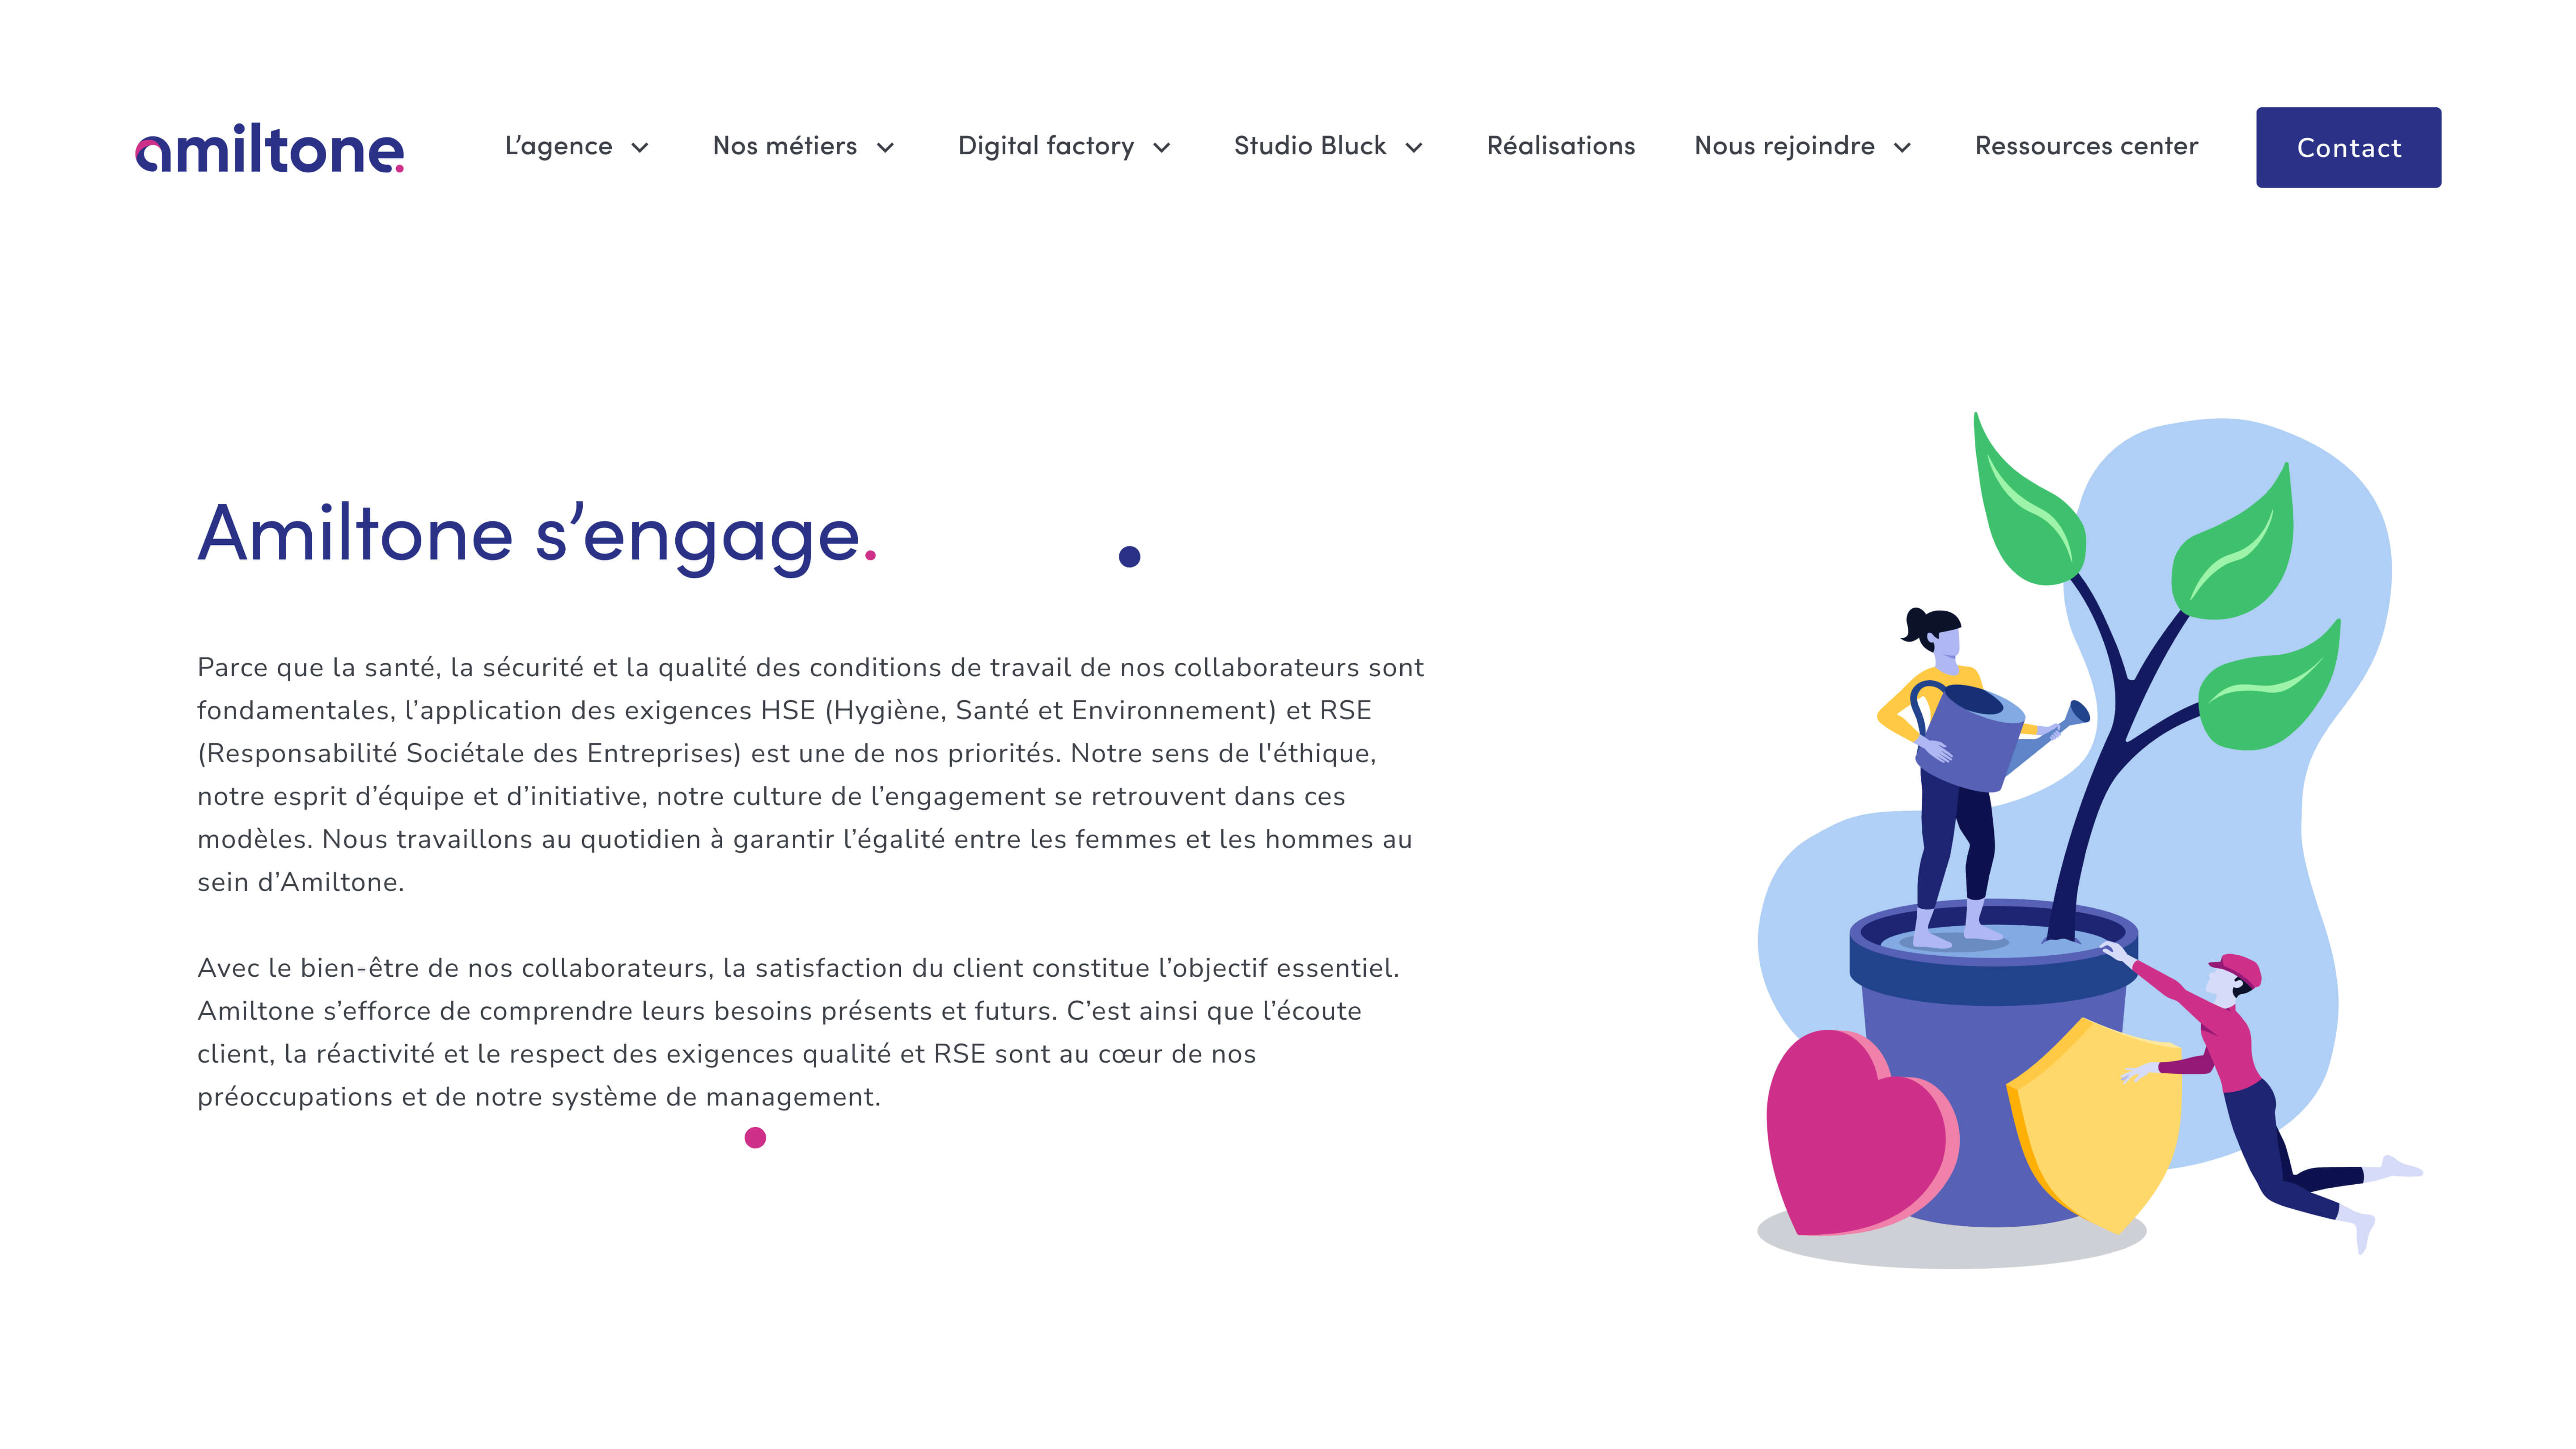 Web interface that illustrates the page dedicated to the commitments of the Amiltone agency